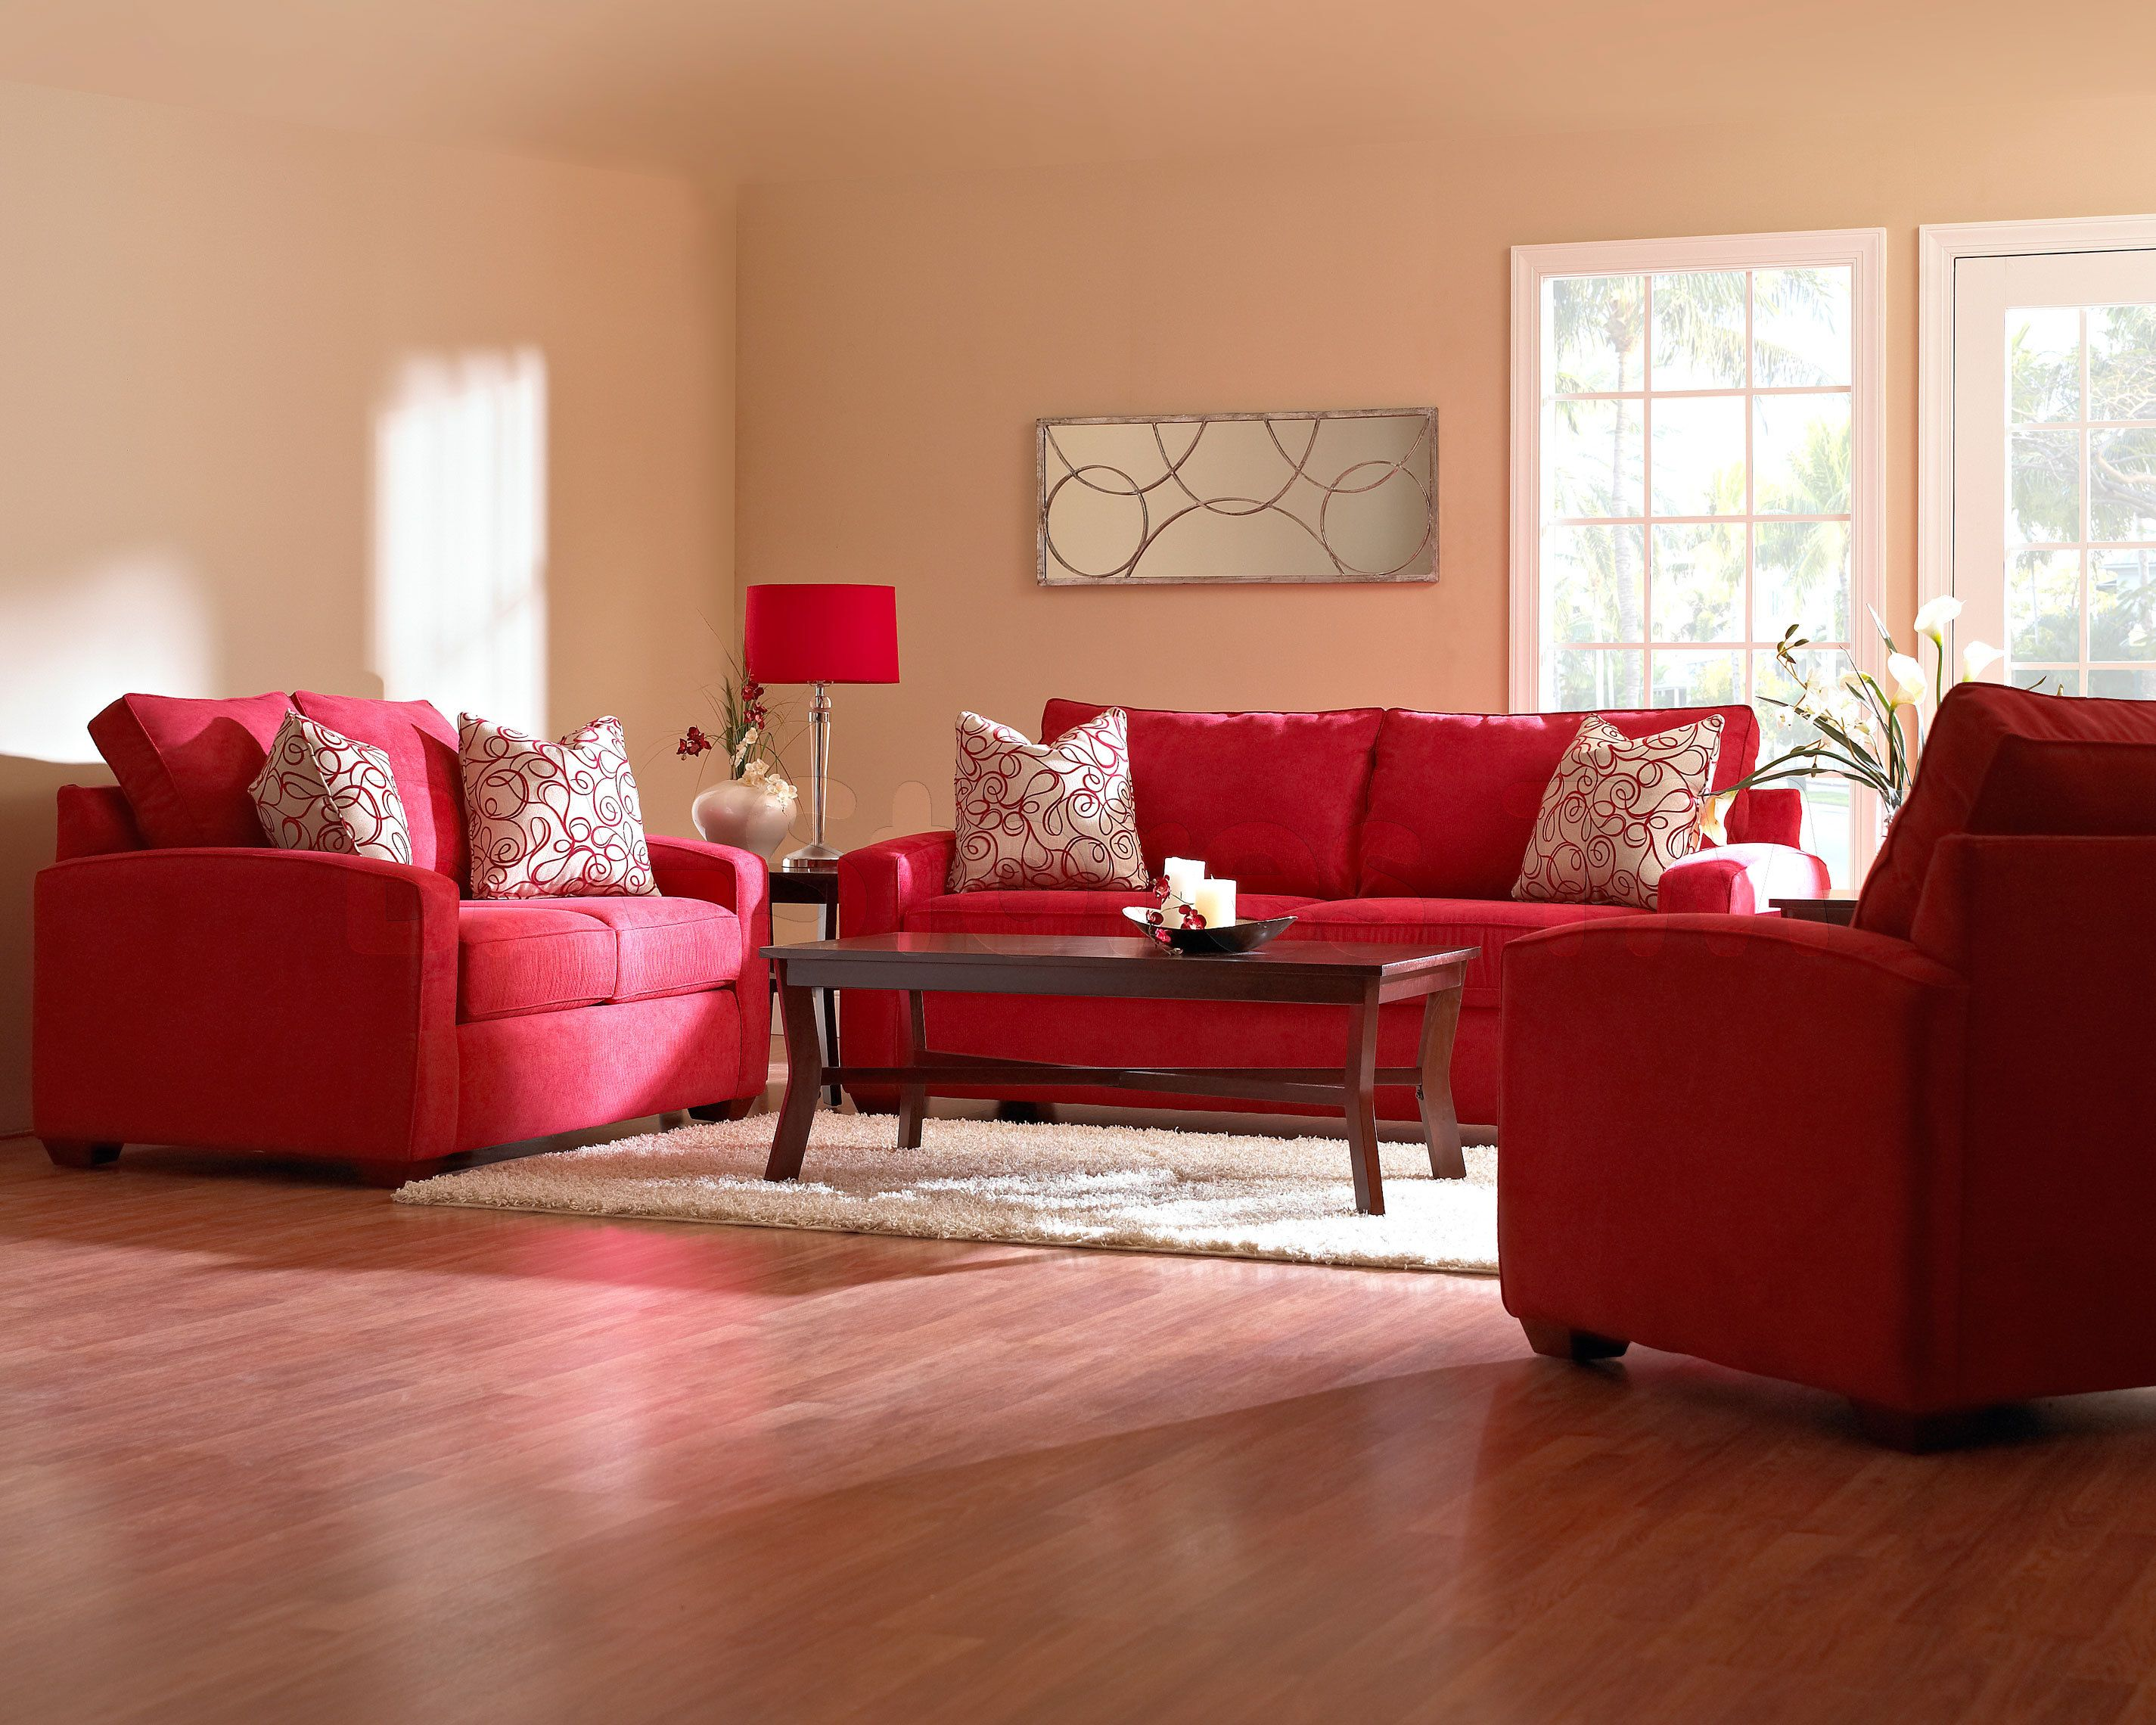 Red Furniture Ideas Image Result For Living Rooms With Red Furniture House